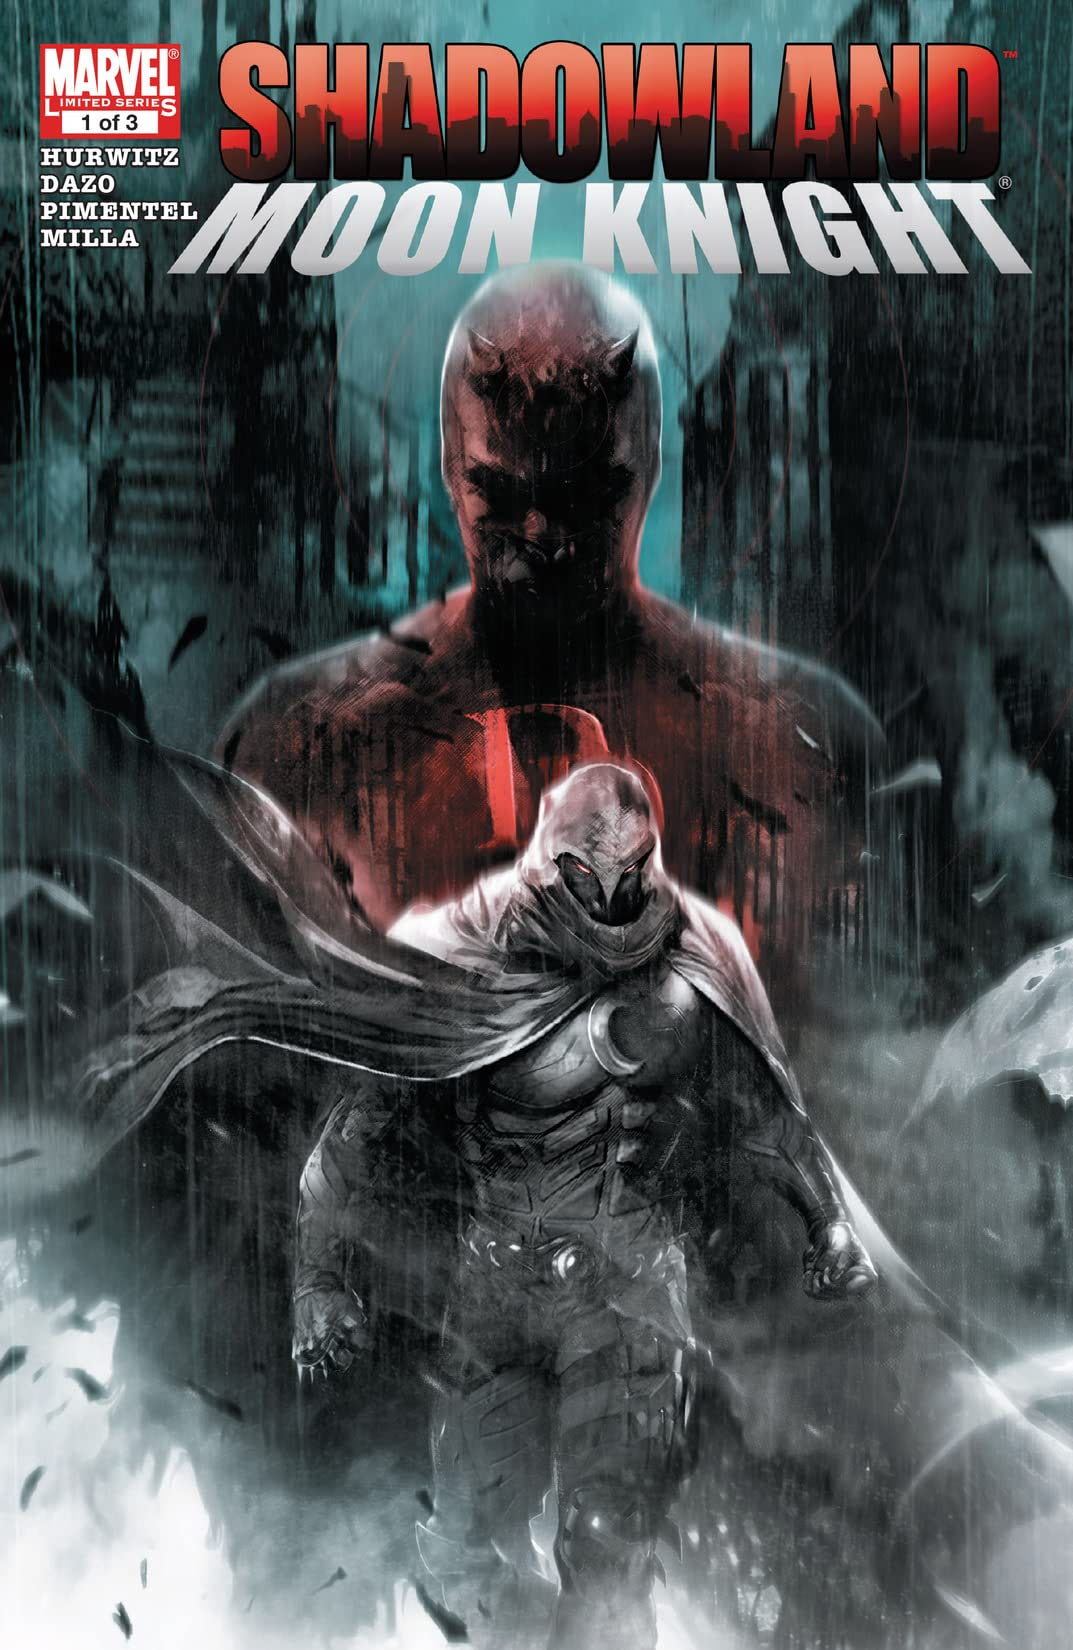 Shadowland: Moon Knight Vol 1 1